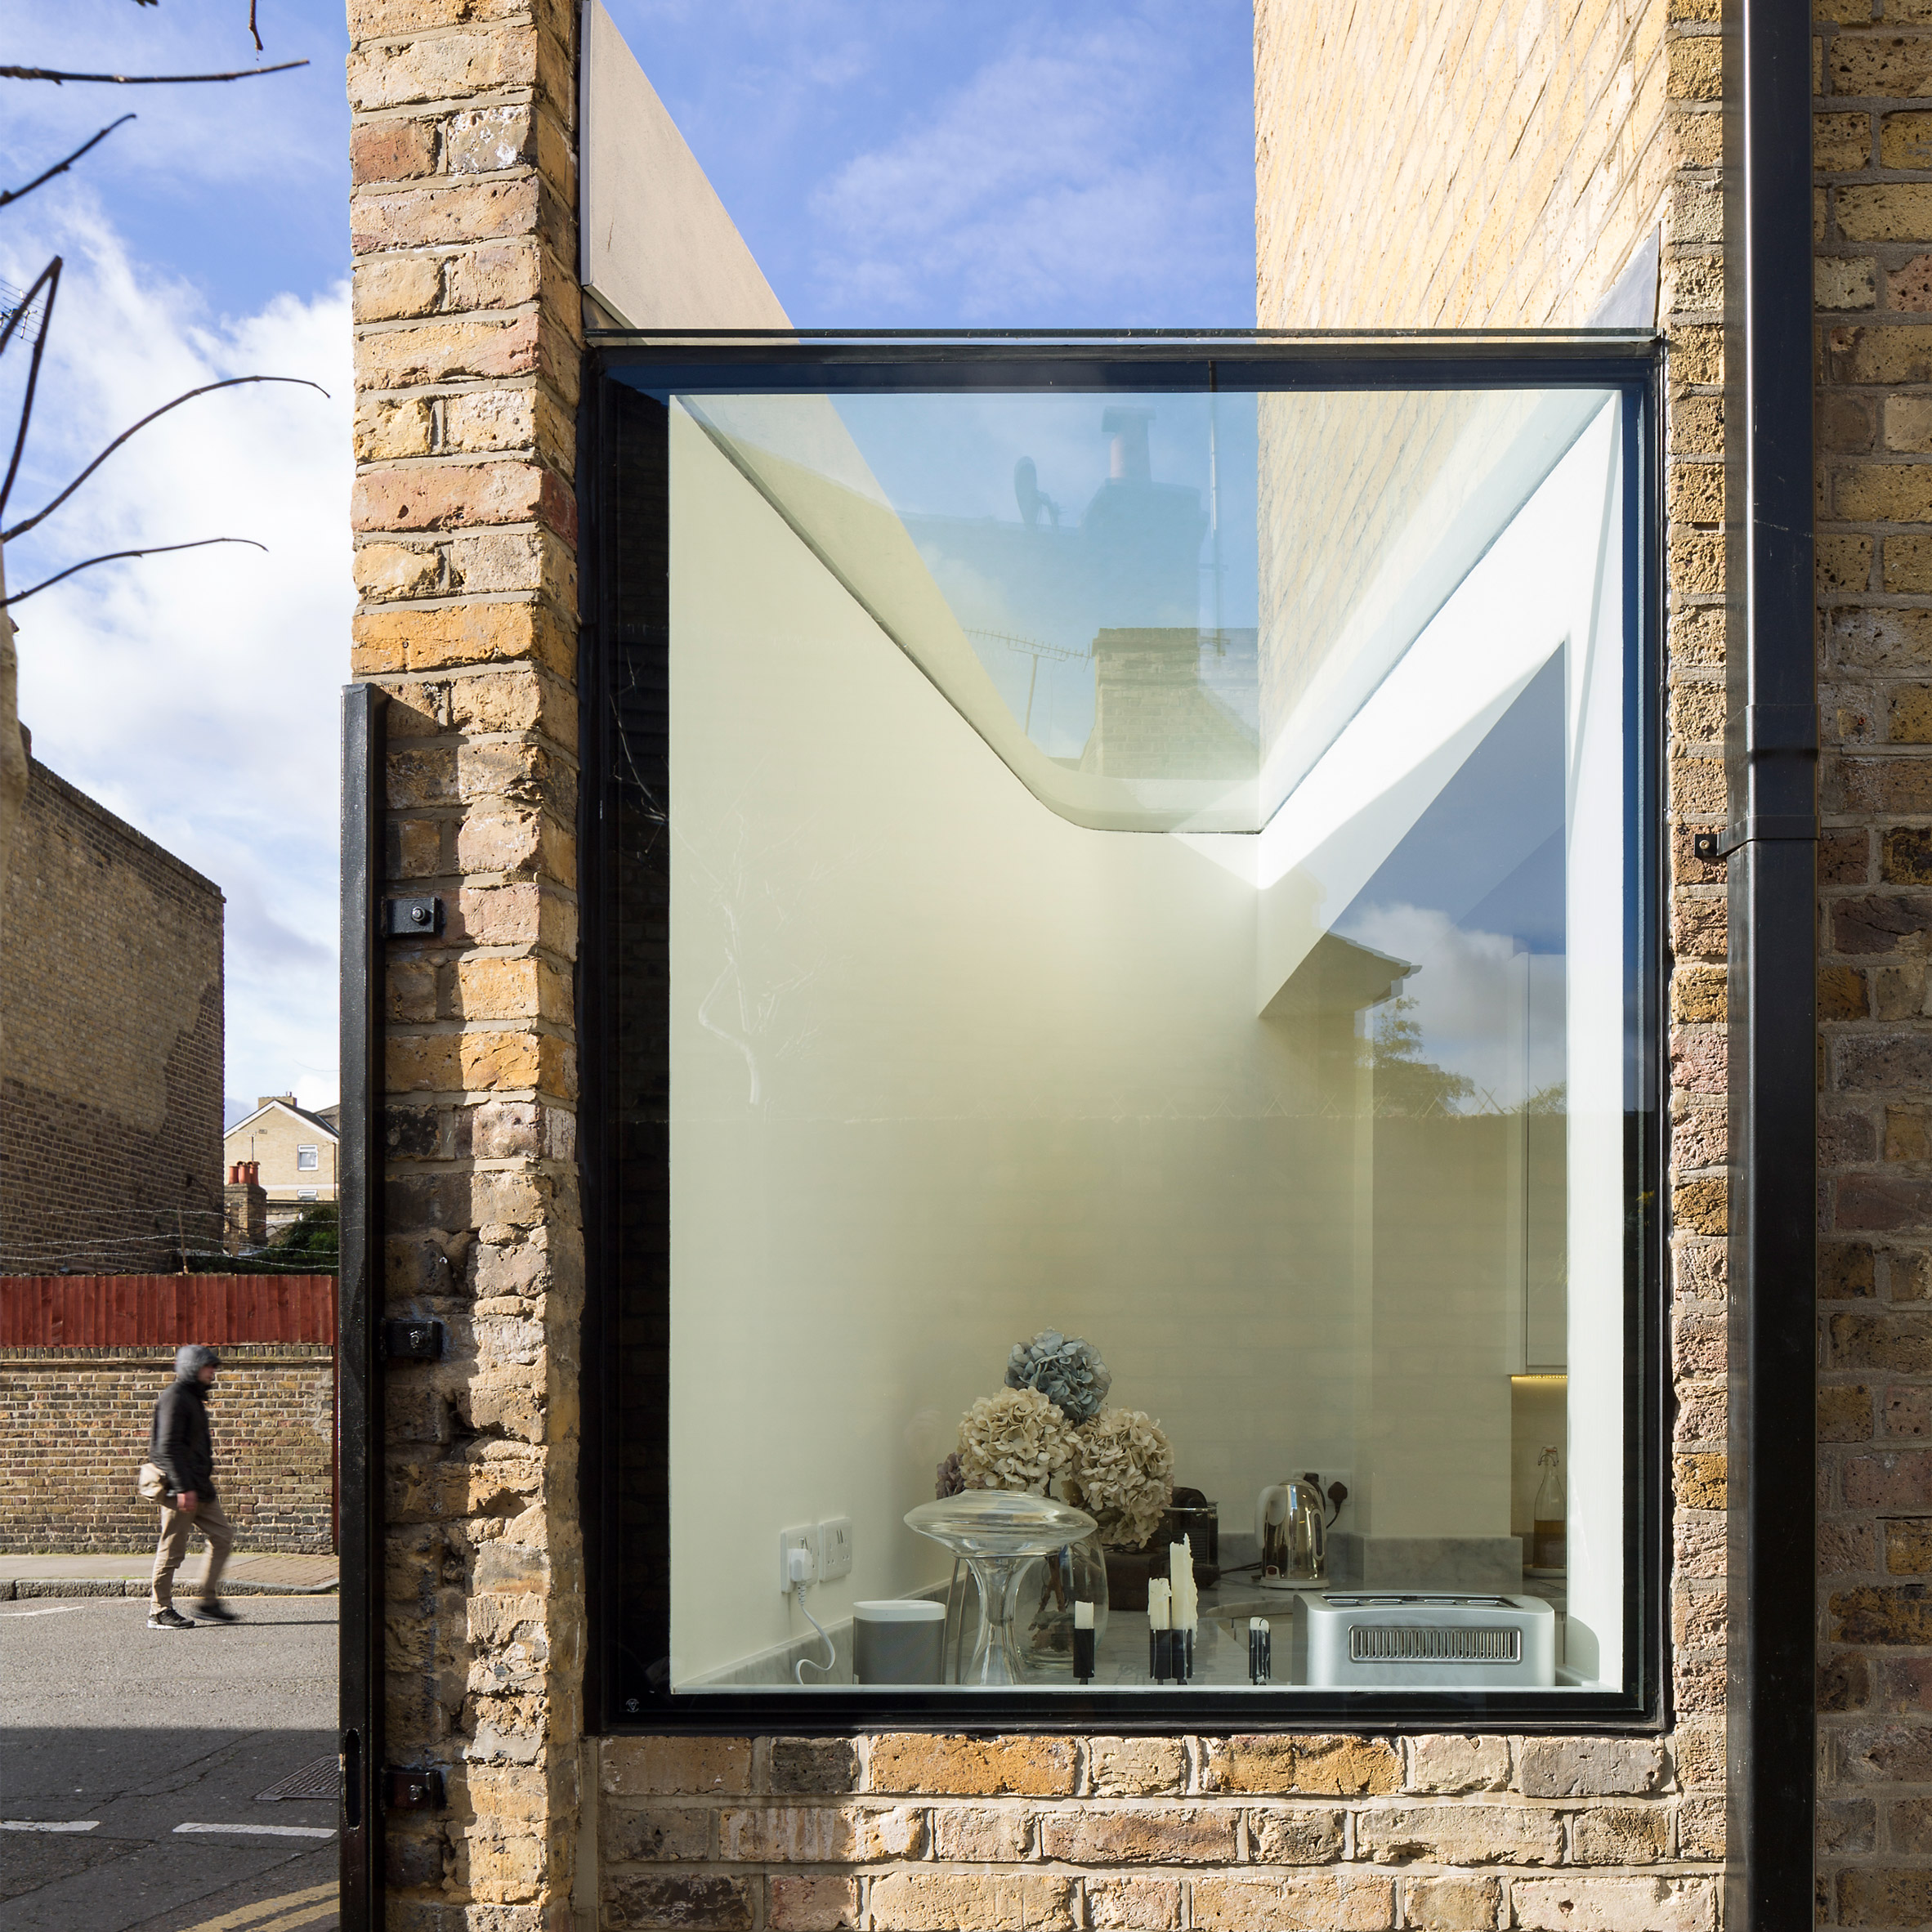 Giant pivoting door connects Columbia Road extension to secluded rear  courtyard